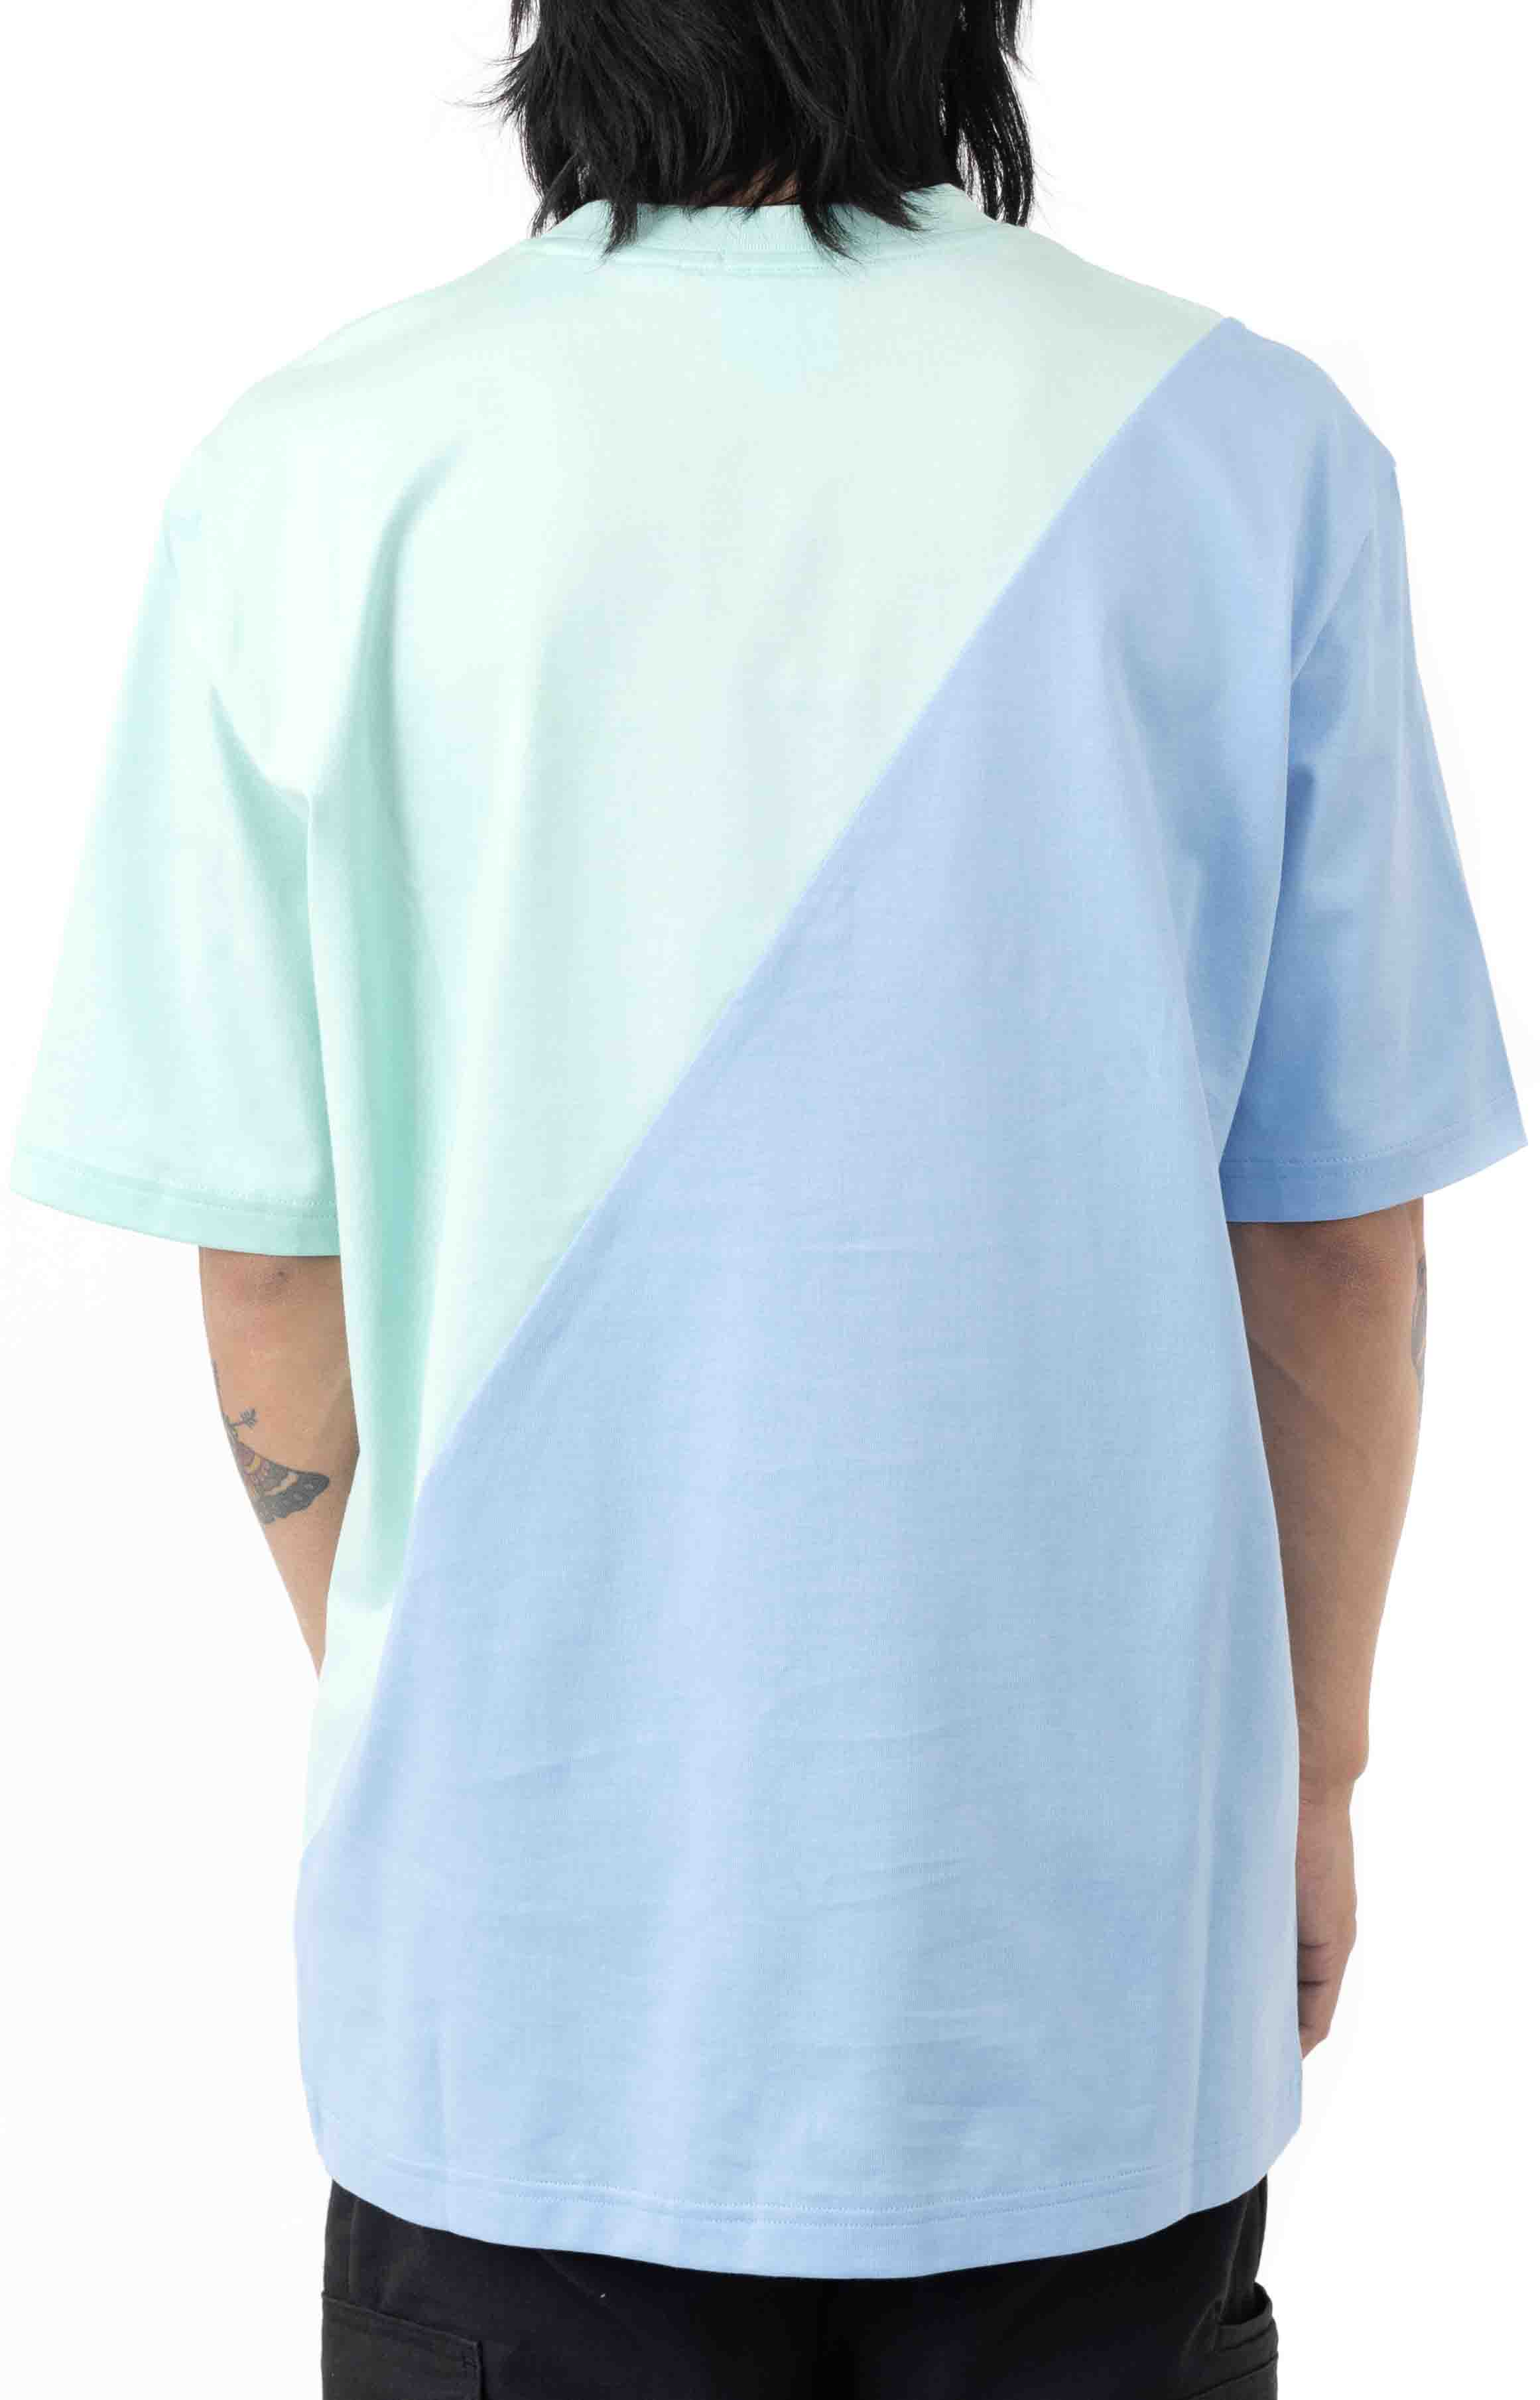 LIVE Loose Fit Colorblock T-Shirt - Turquoise/Blue 3